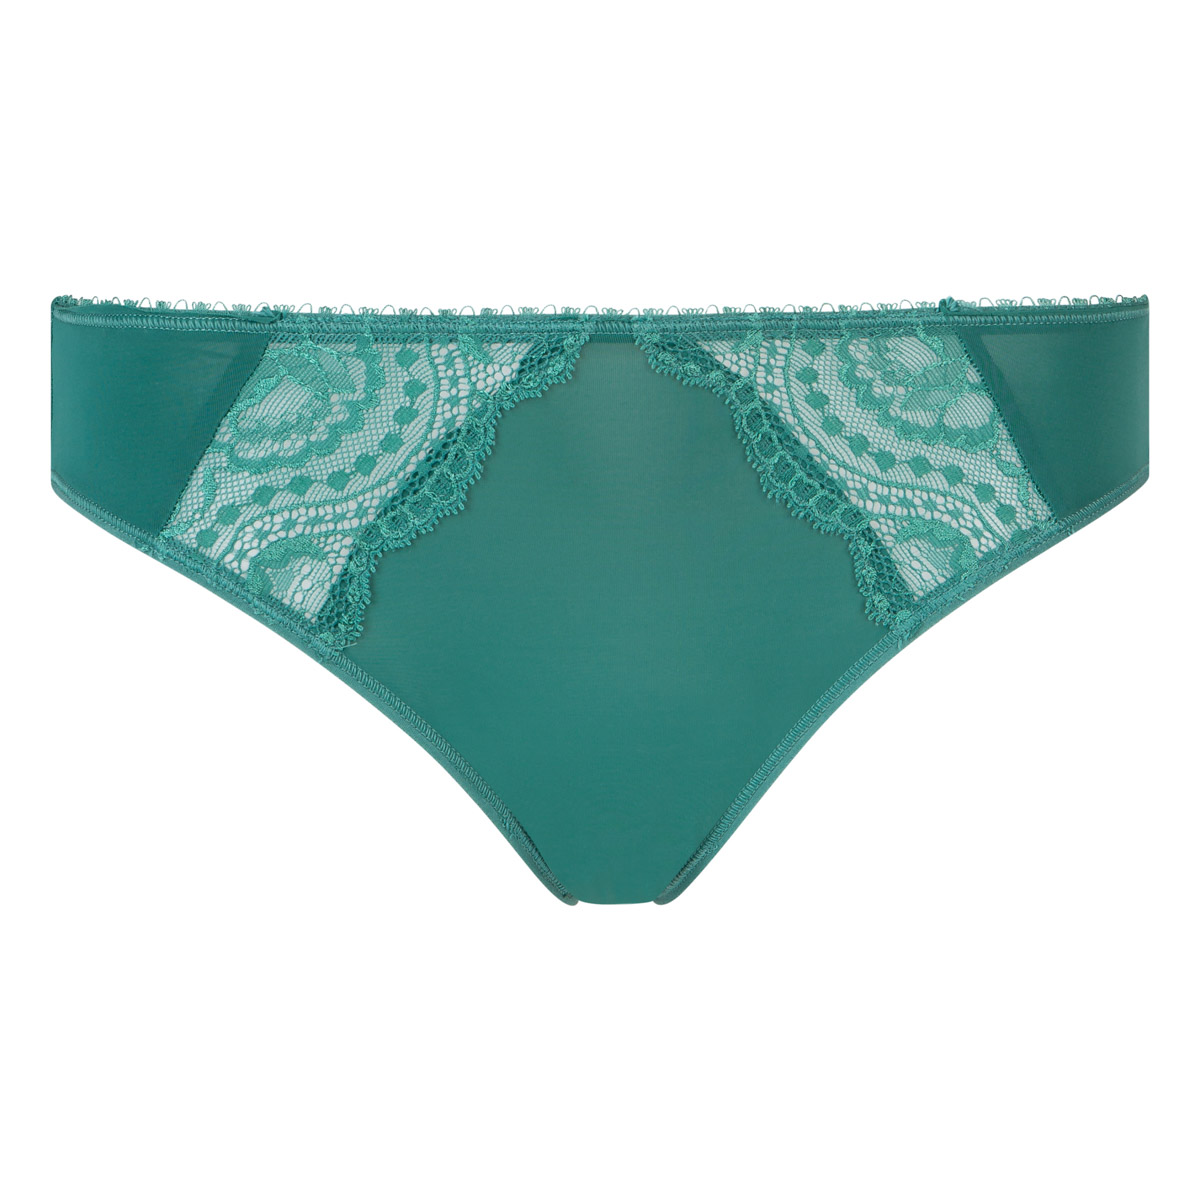 Bikini style knickers in palm green - Flower Elegance, , PLAYTEX